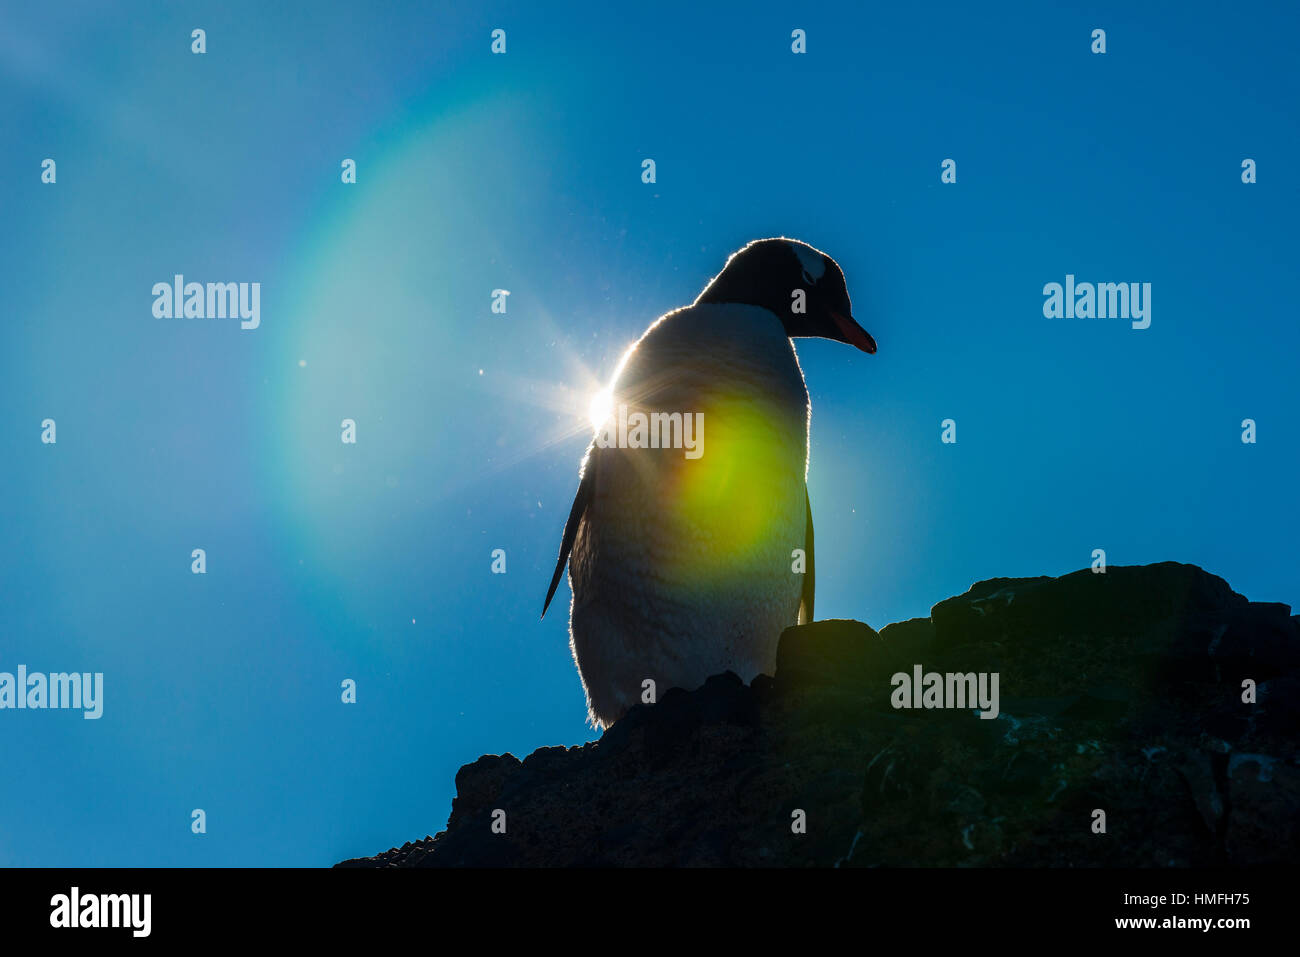 Gentoo penguin (Pygoscelis papua) in backlight, Brown Bluff, Antarctica, Polar Regions - Stock Image